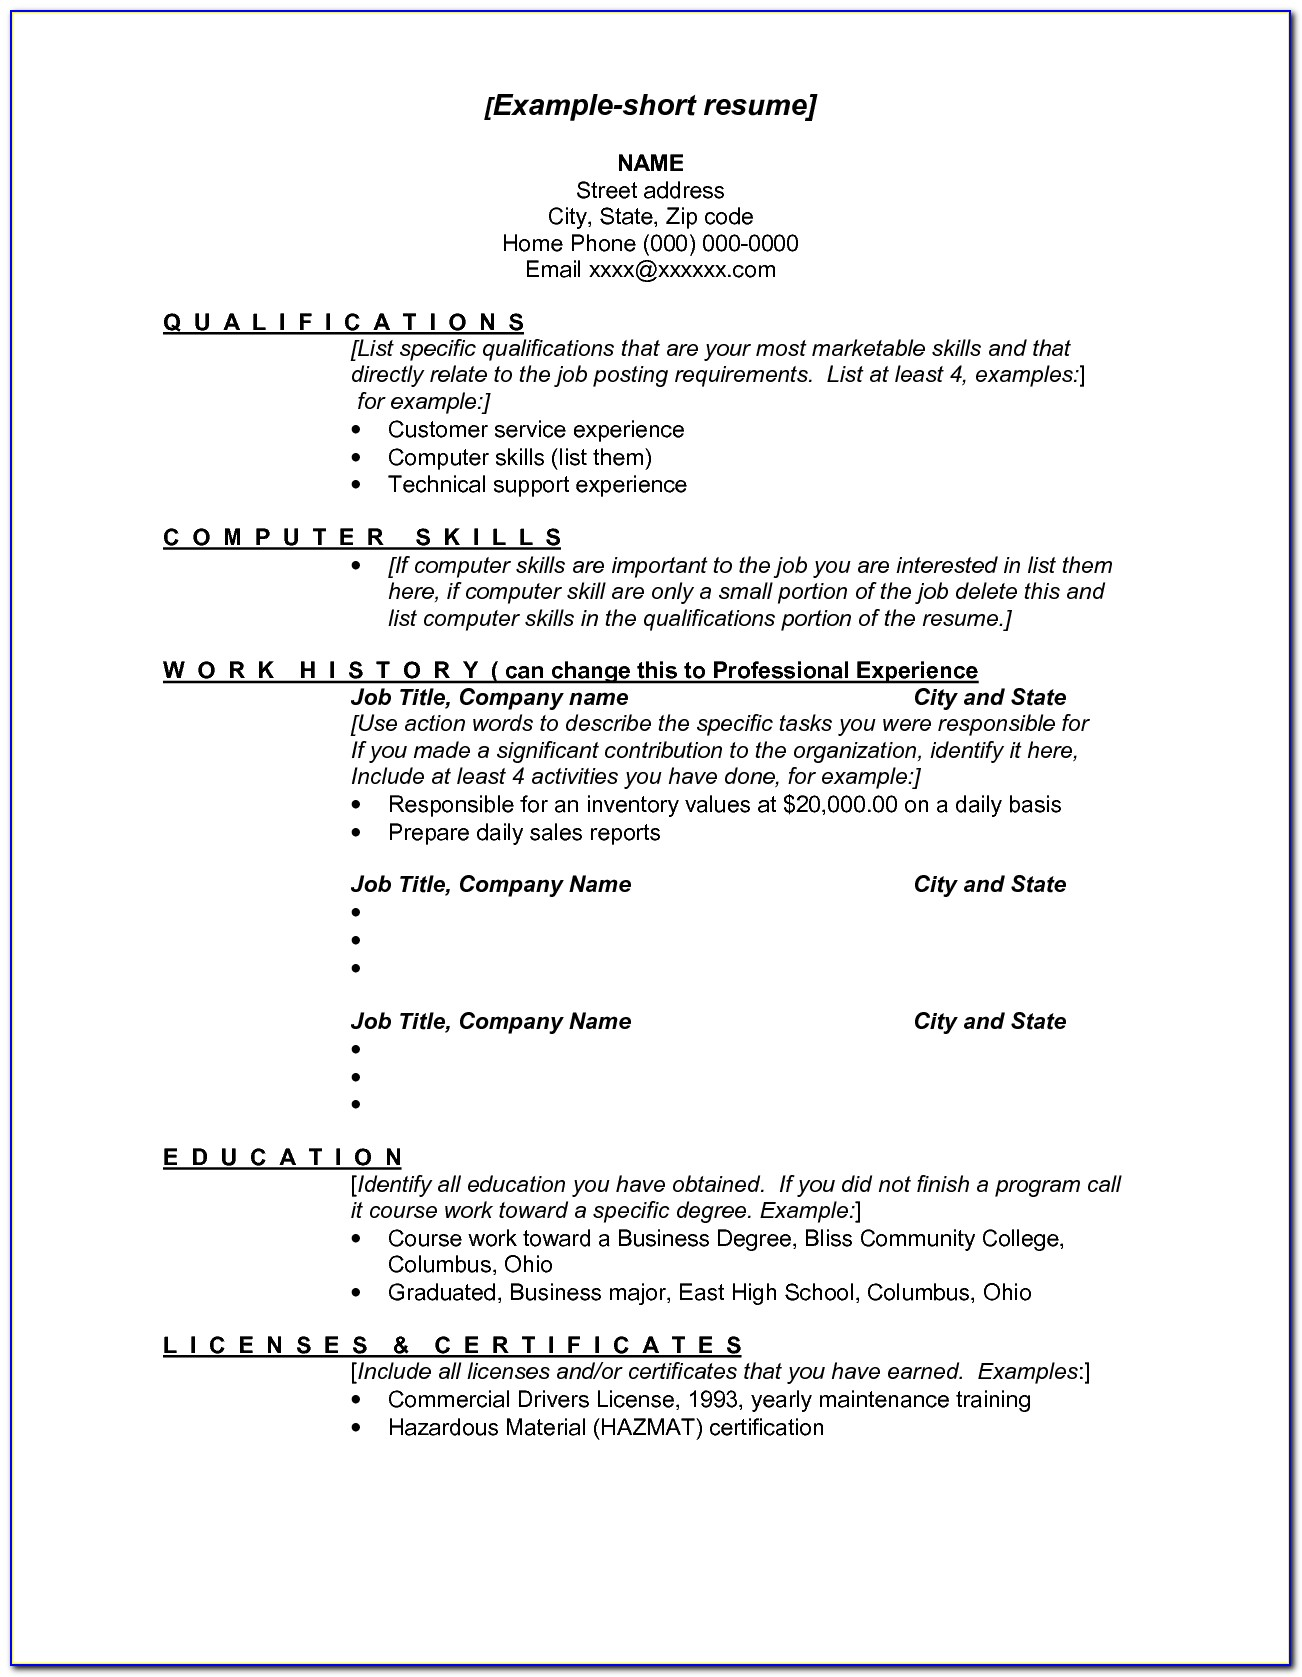 Resume Layout Examples 2017